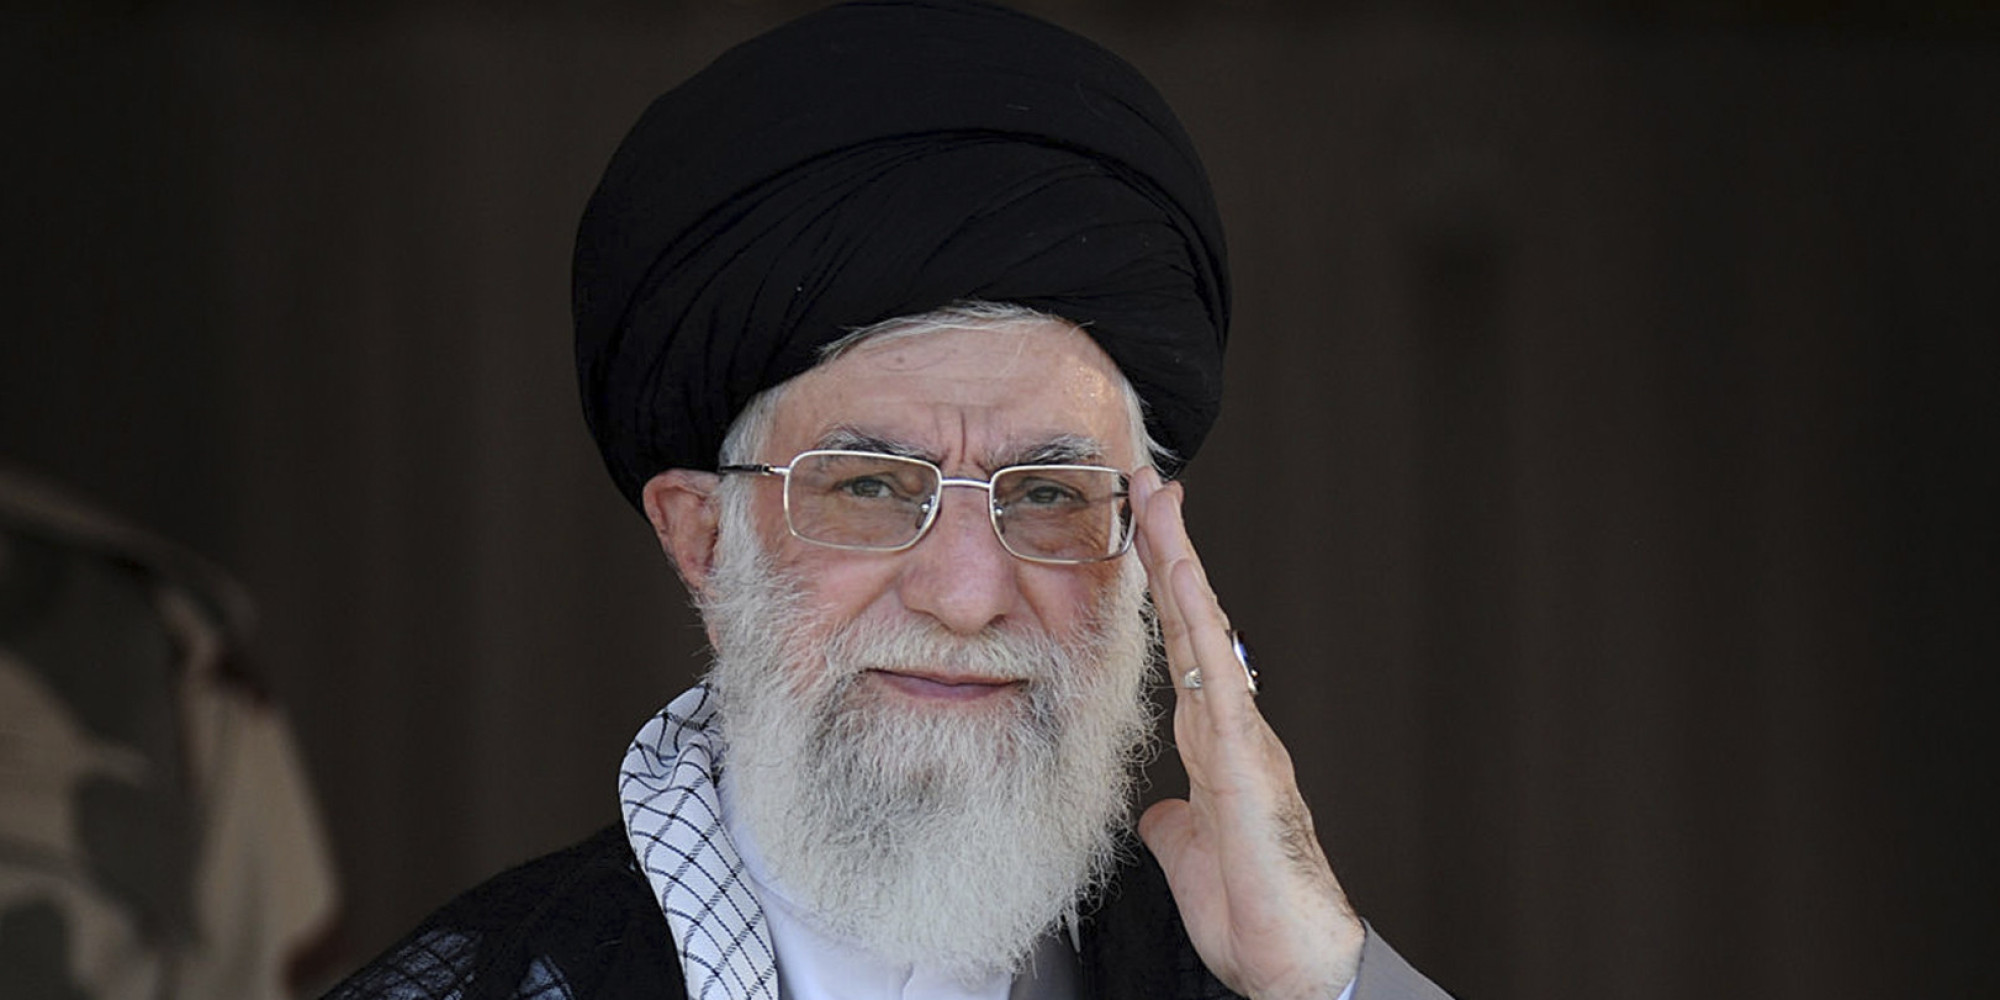 Iran Vows To 'Set Fire' To Nuclear Deal If U.S. Reneges ...